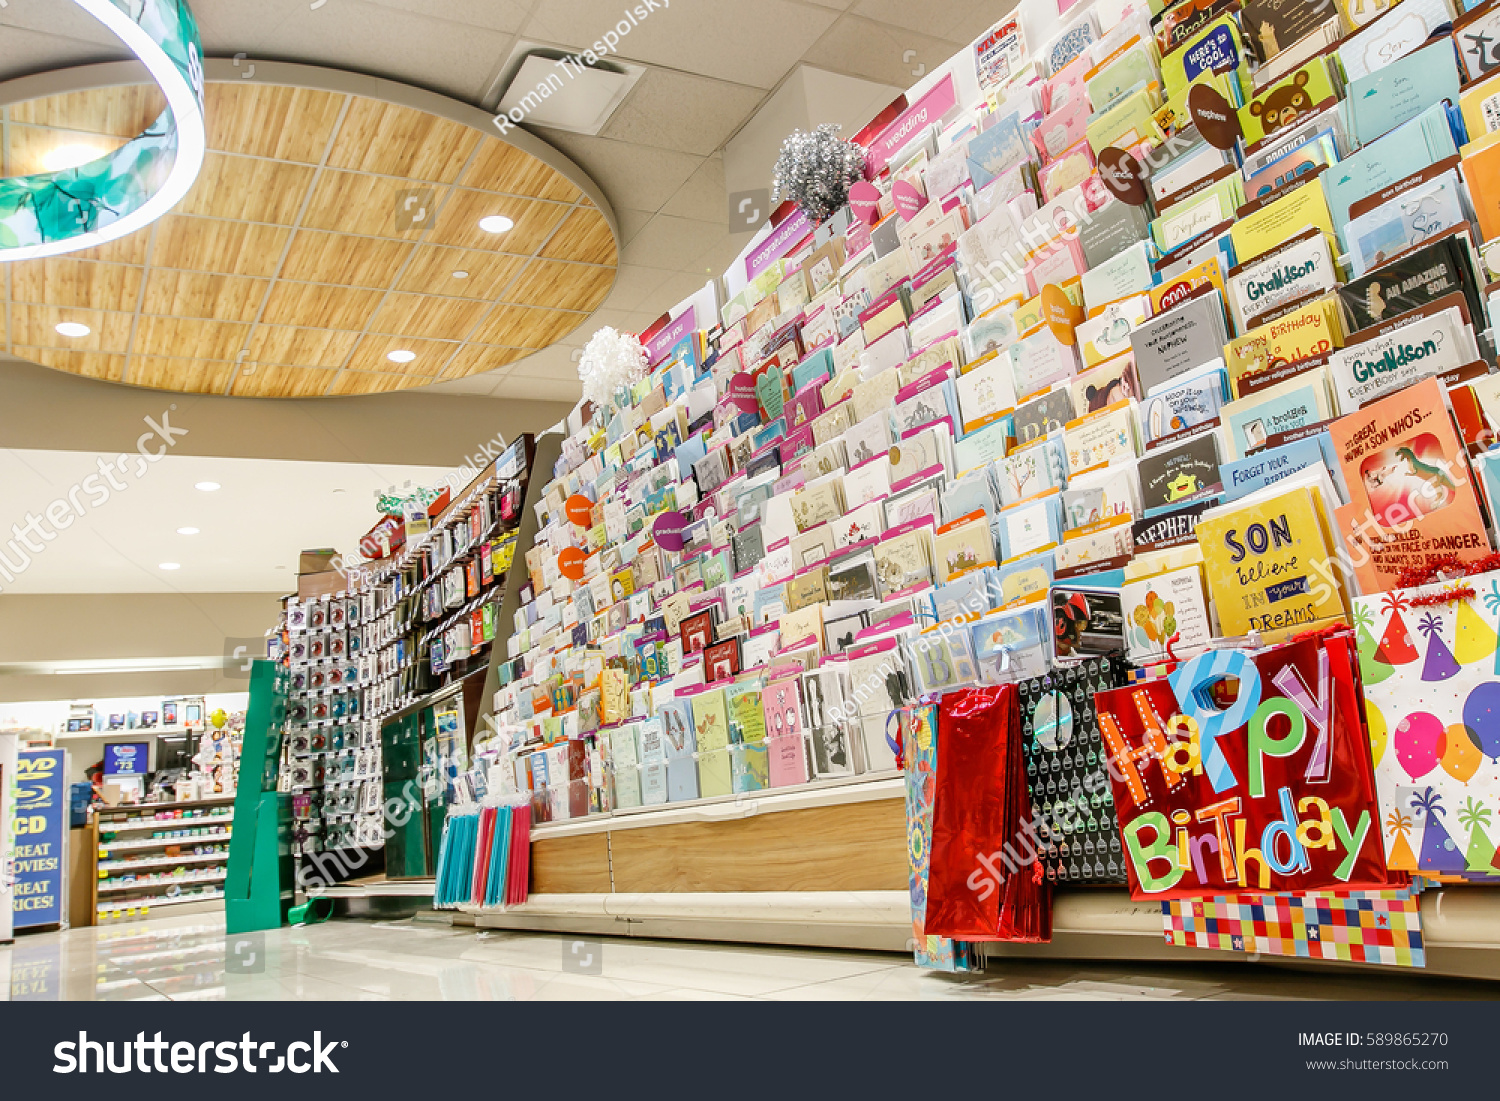 New York February 26 2017 Greeting Cards Isle In A Rite Aid Pharmacy